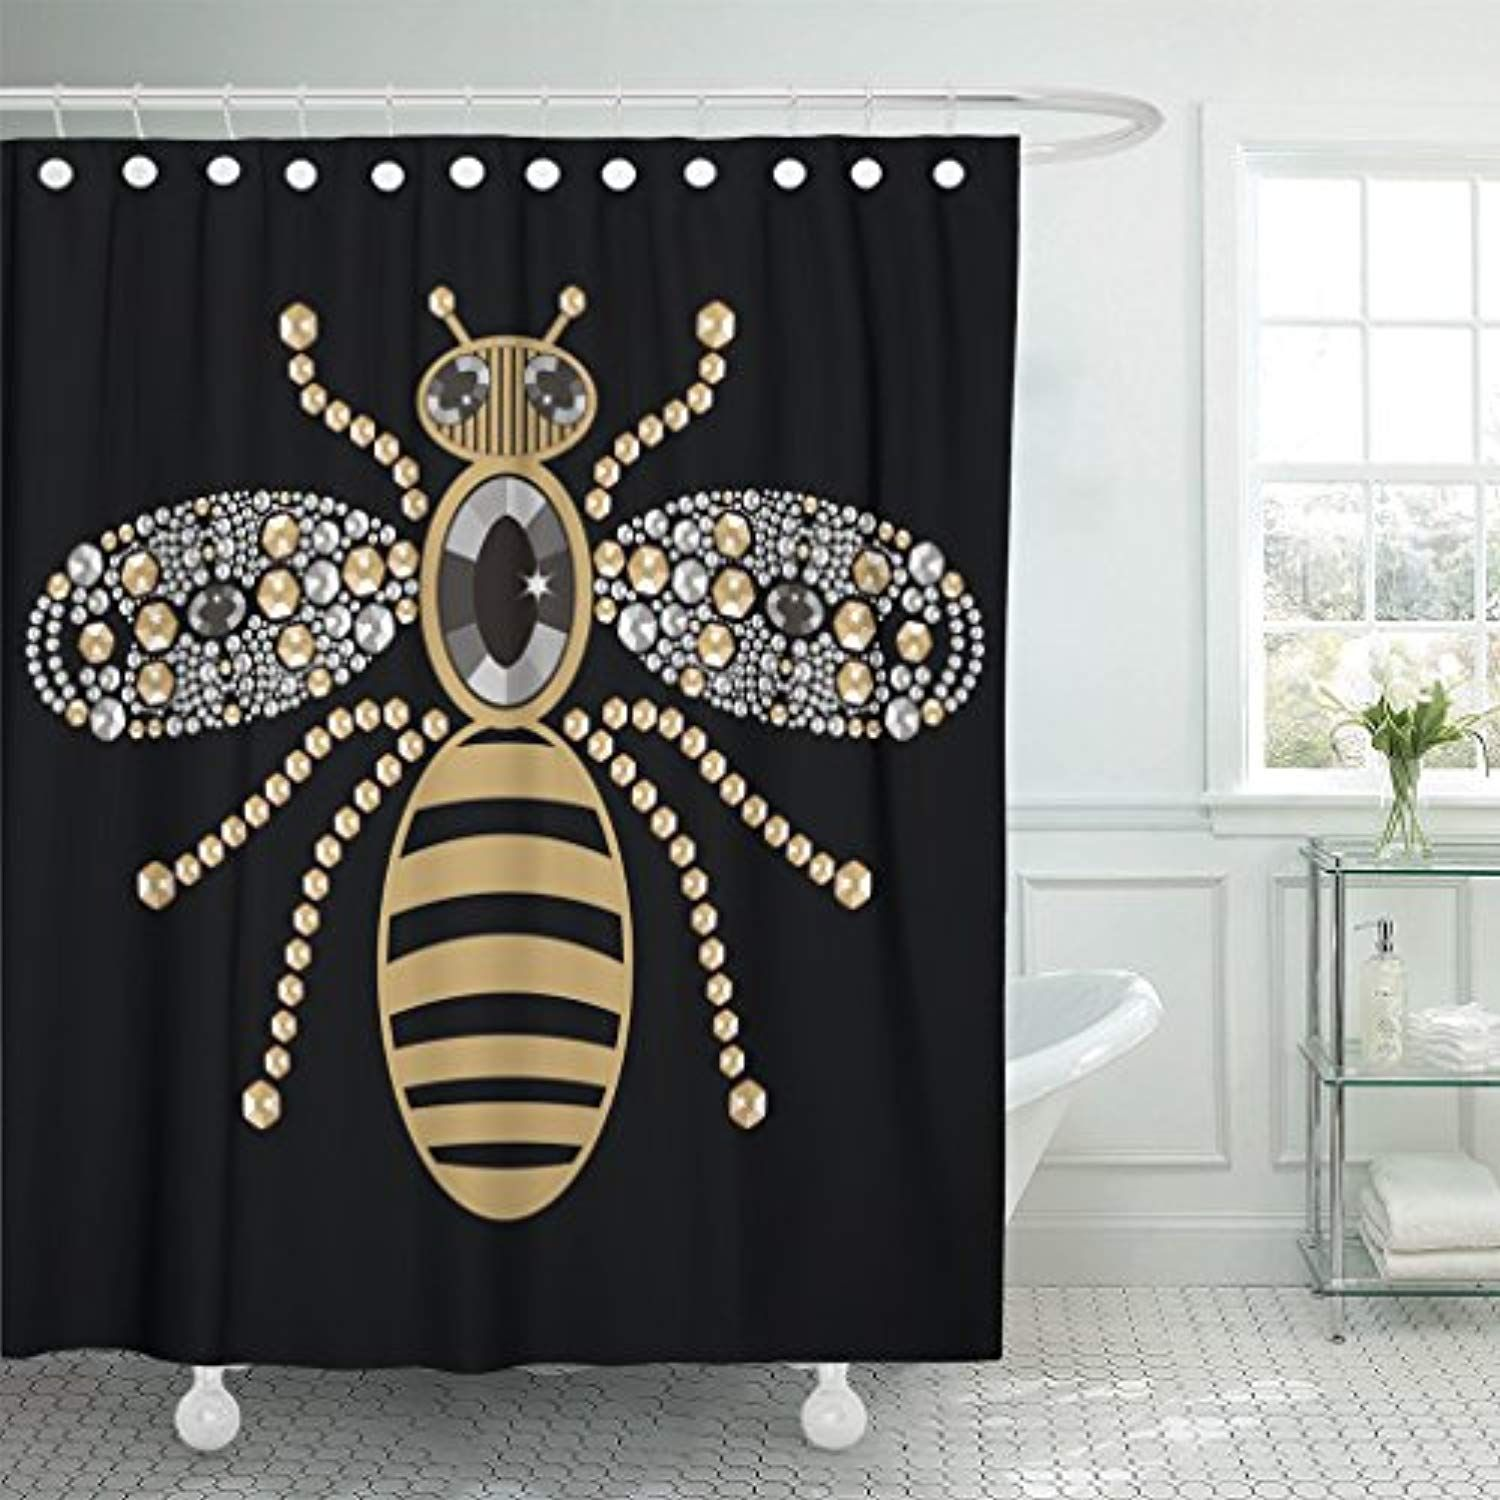 Tompop Shower Curtain Beautiful Of Flying Bees Shiny Gold Silver